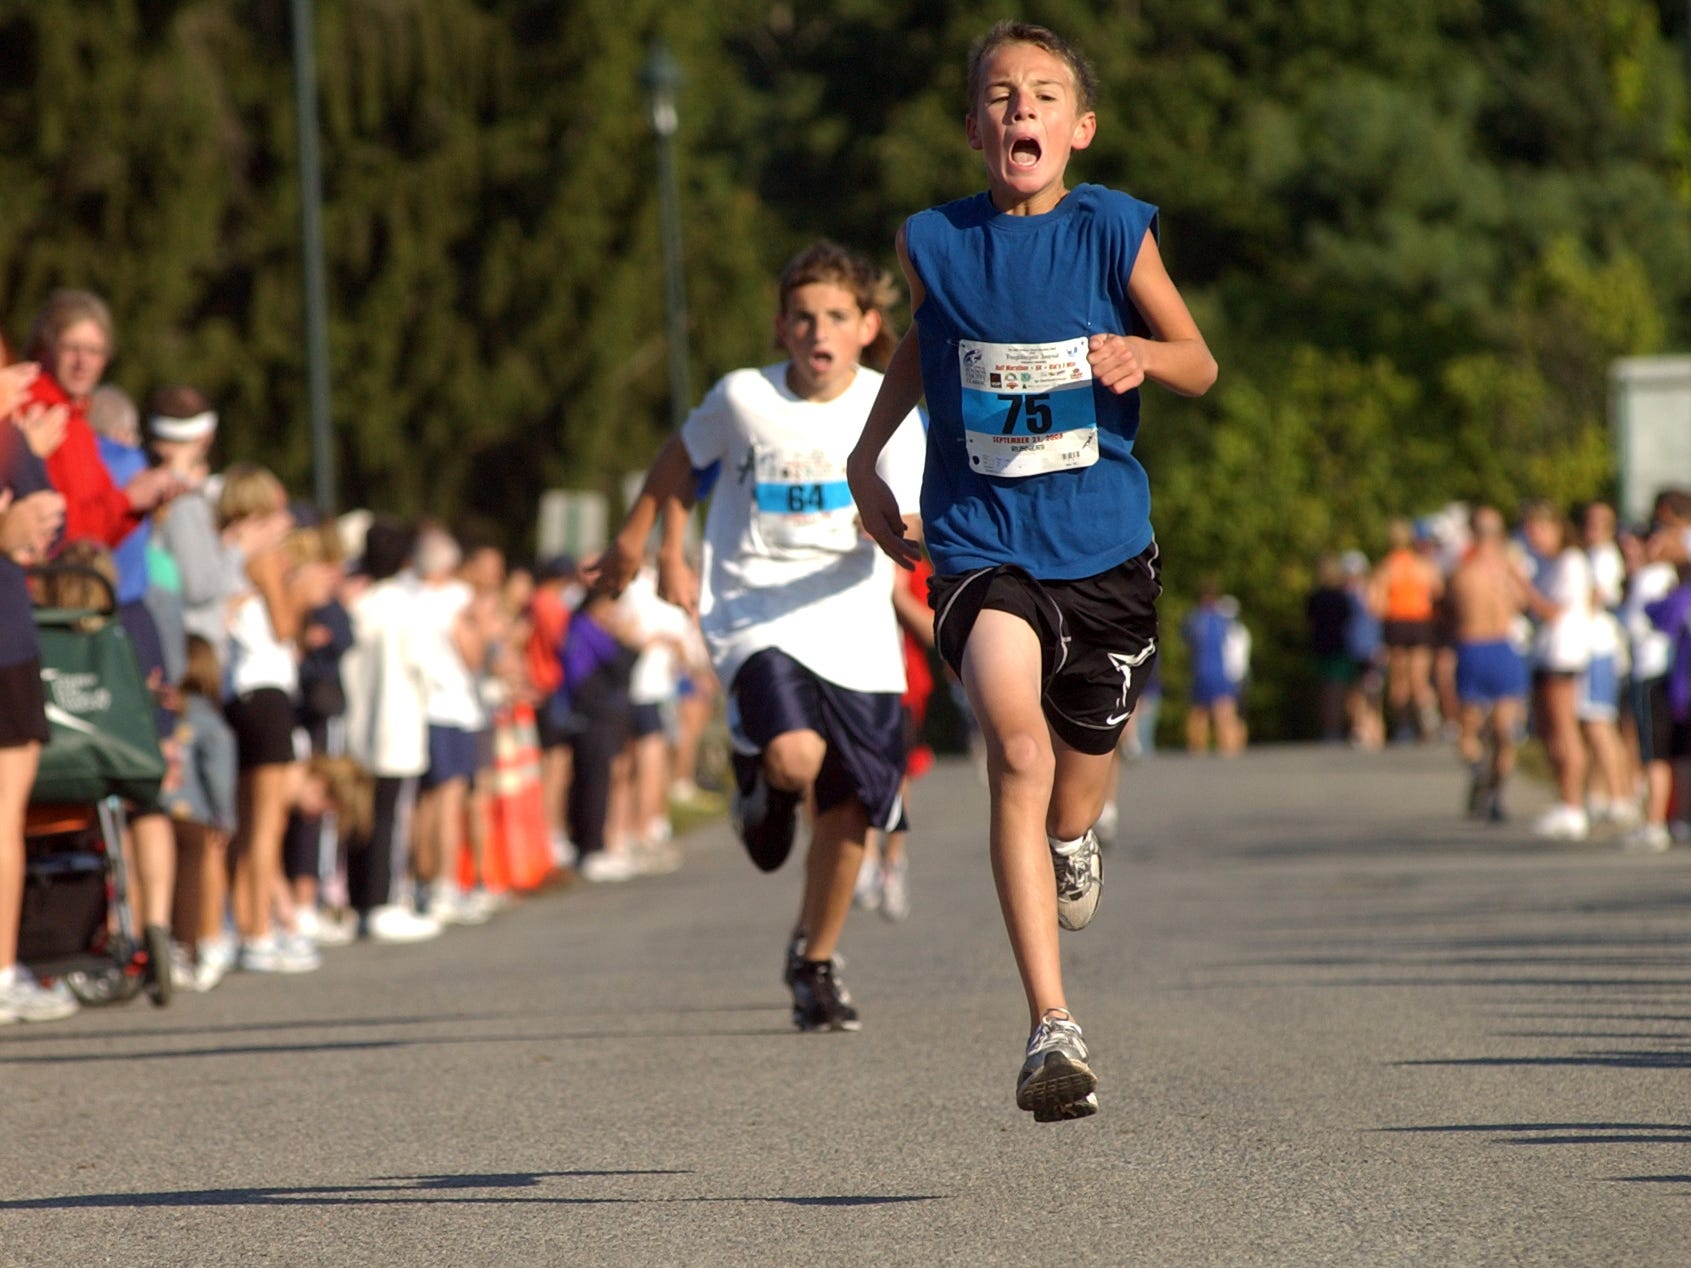 Luke Timm, 10, of the City of Poughkeepsie wins the kids' race of the 30th annual Dutchess County Classic Sunday, Sept. 21, 2008, starting and finishing at the Wappingers Recreation Area in Wappinger.